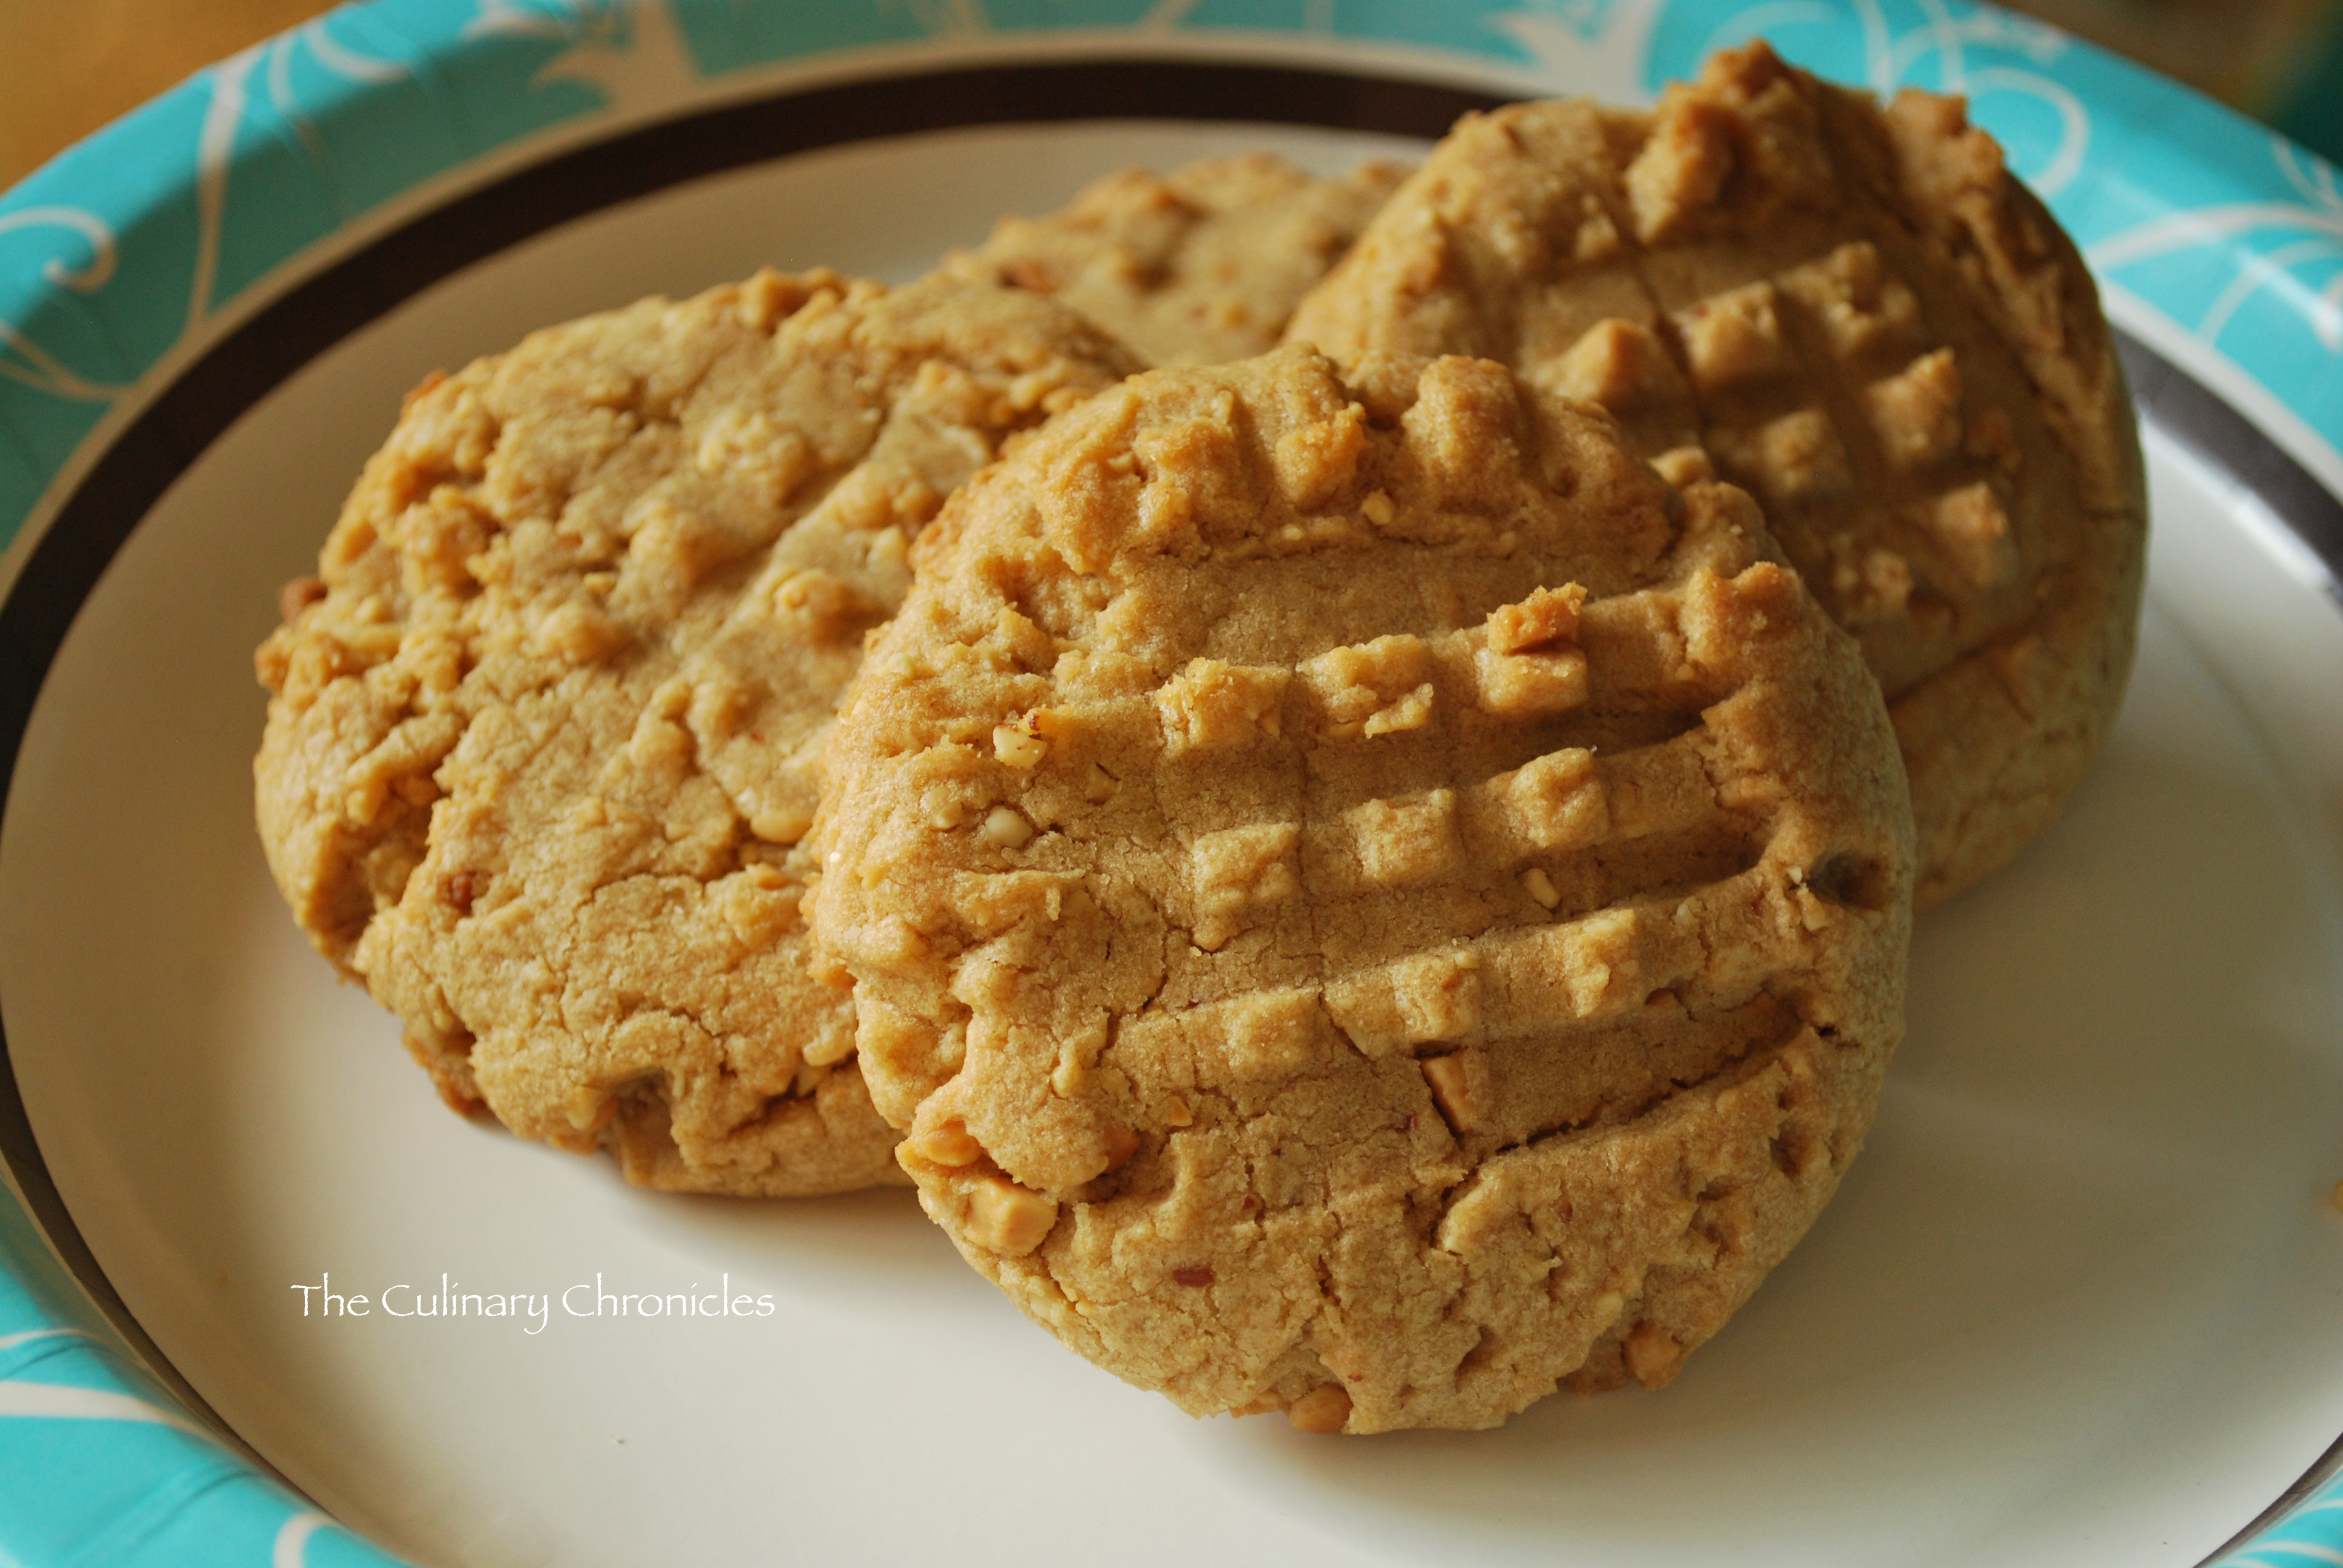 Big, Super-Nutty Peanut Butter Cookies | The Culinary Chronicles